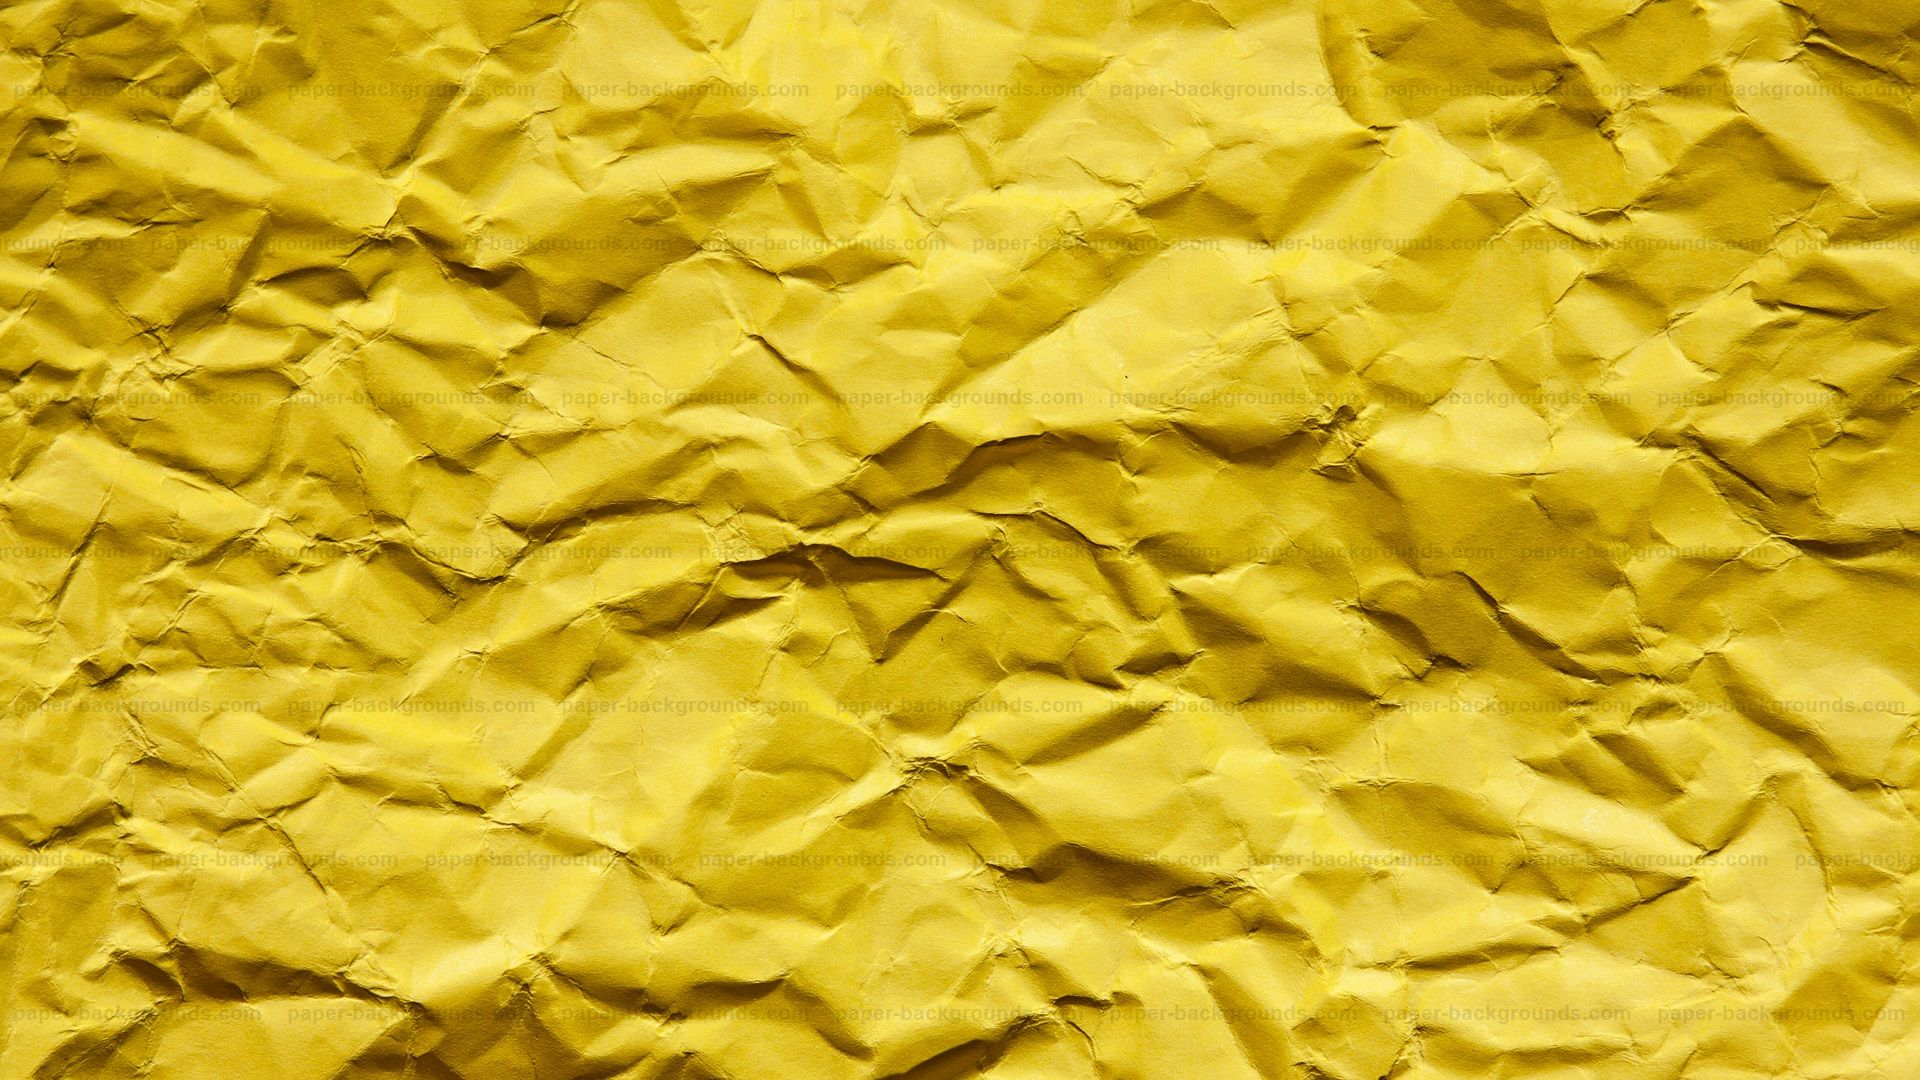 Yellow Wrinkled Paper Texture Hd Wrinkled Paper Paper Texture Yellow Paper Texture